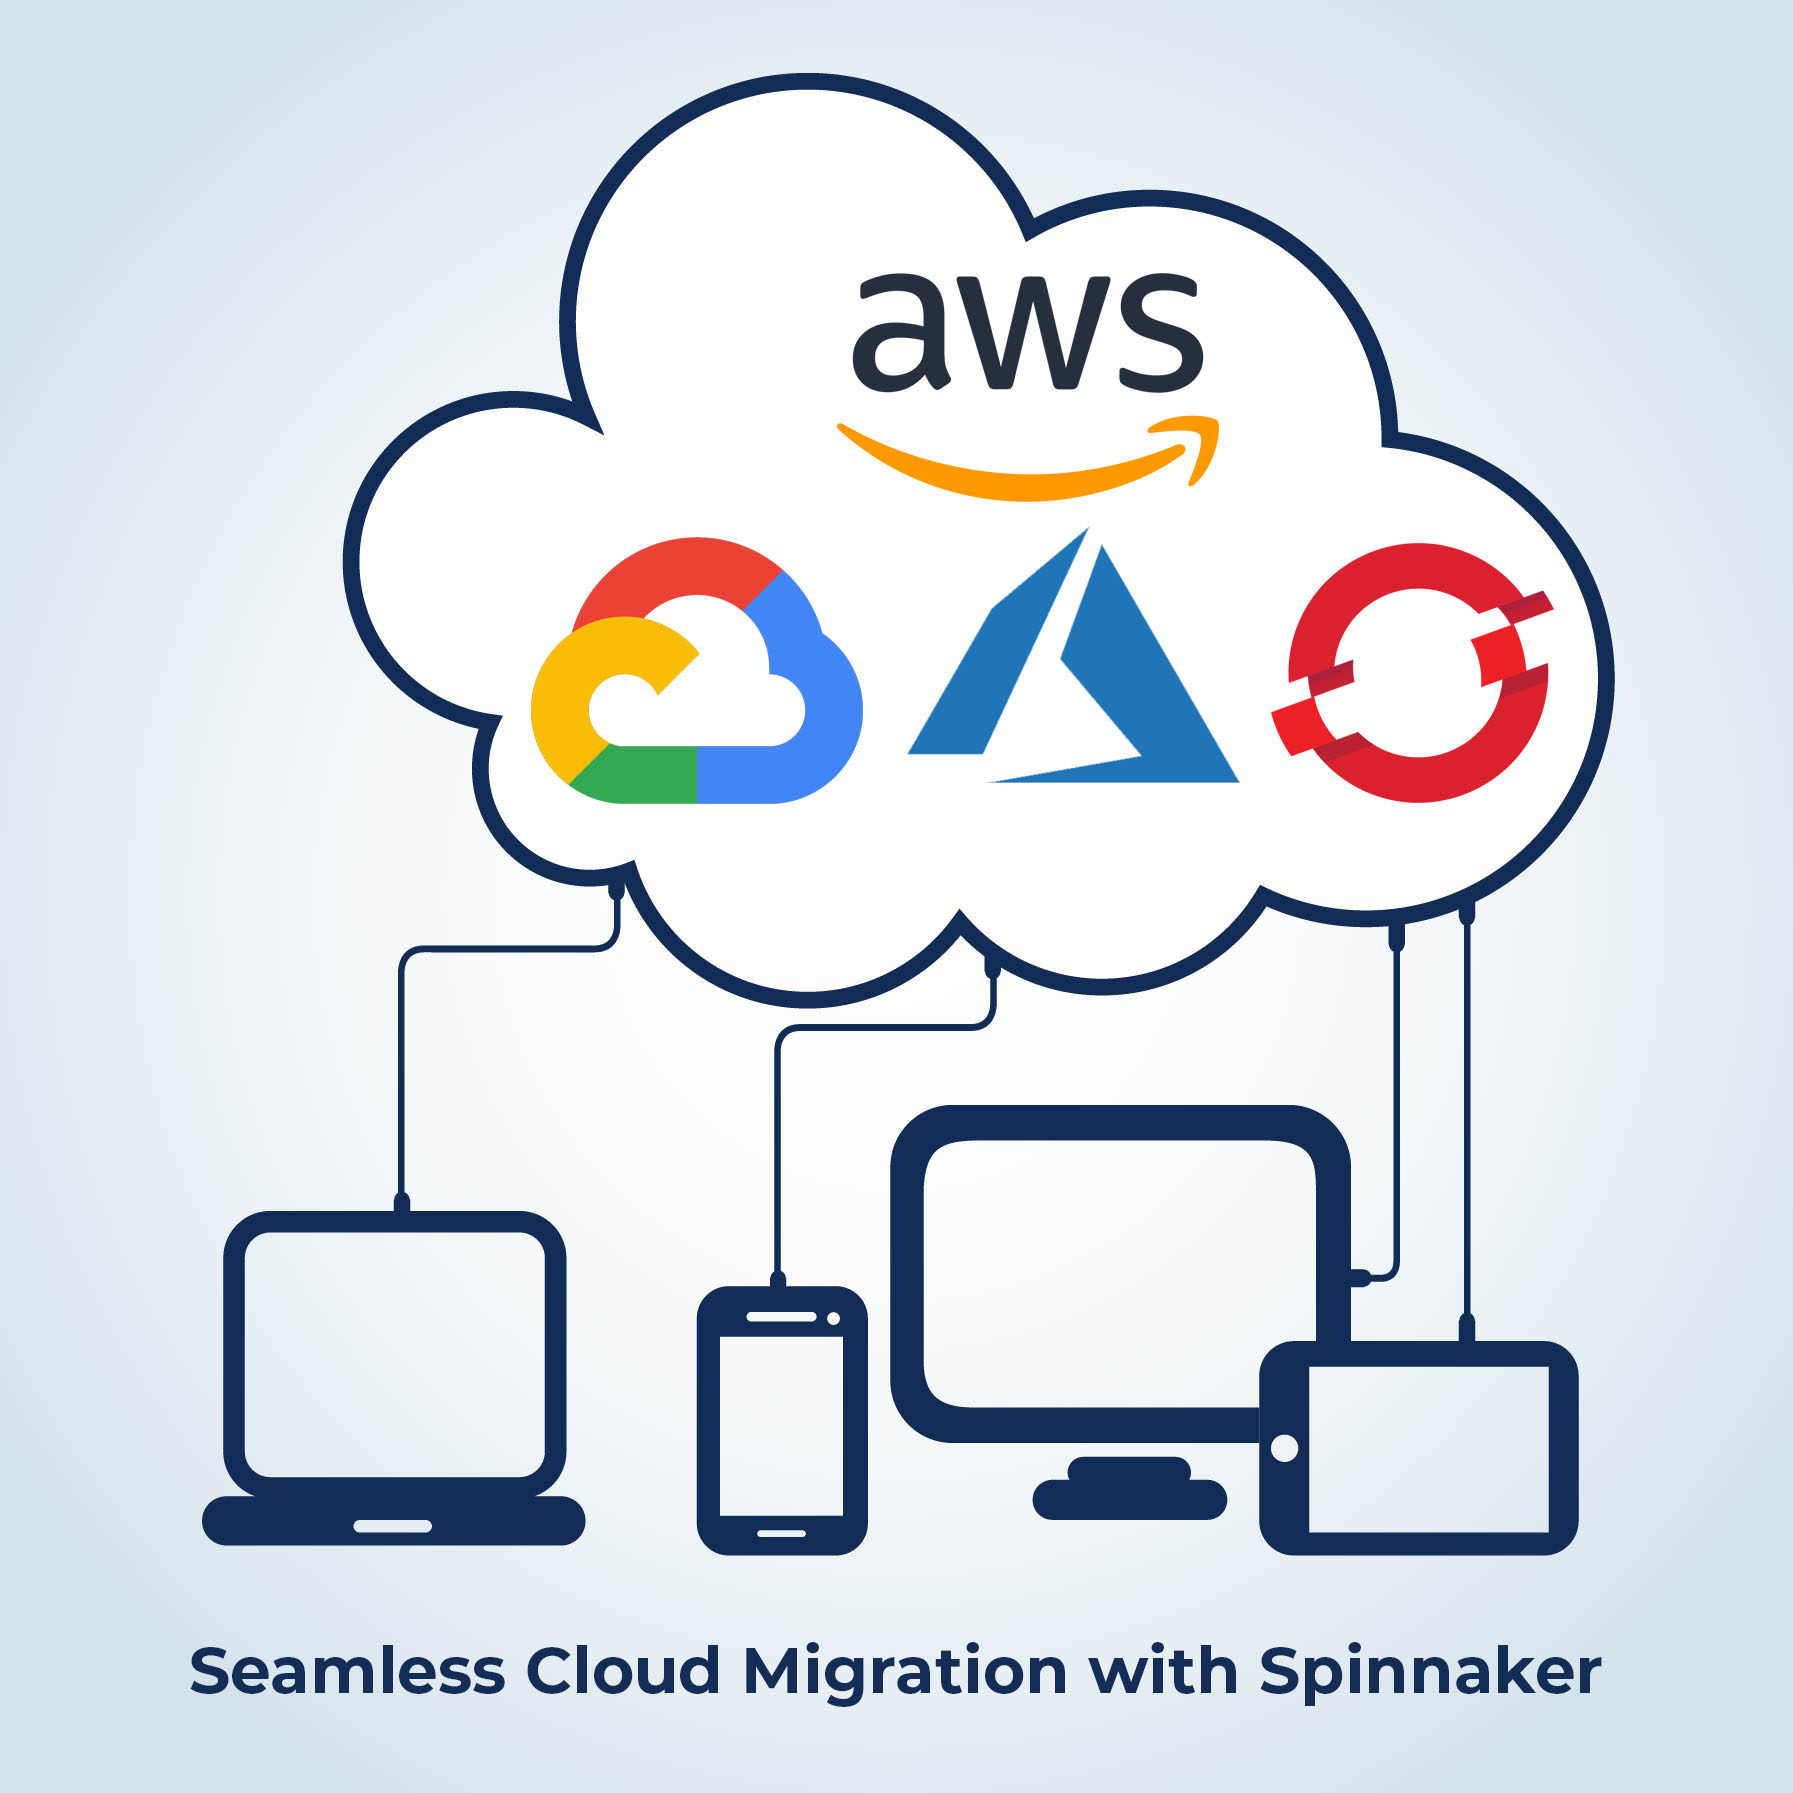 AWS seamless Cloud Migration with Spinnaker